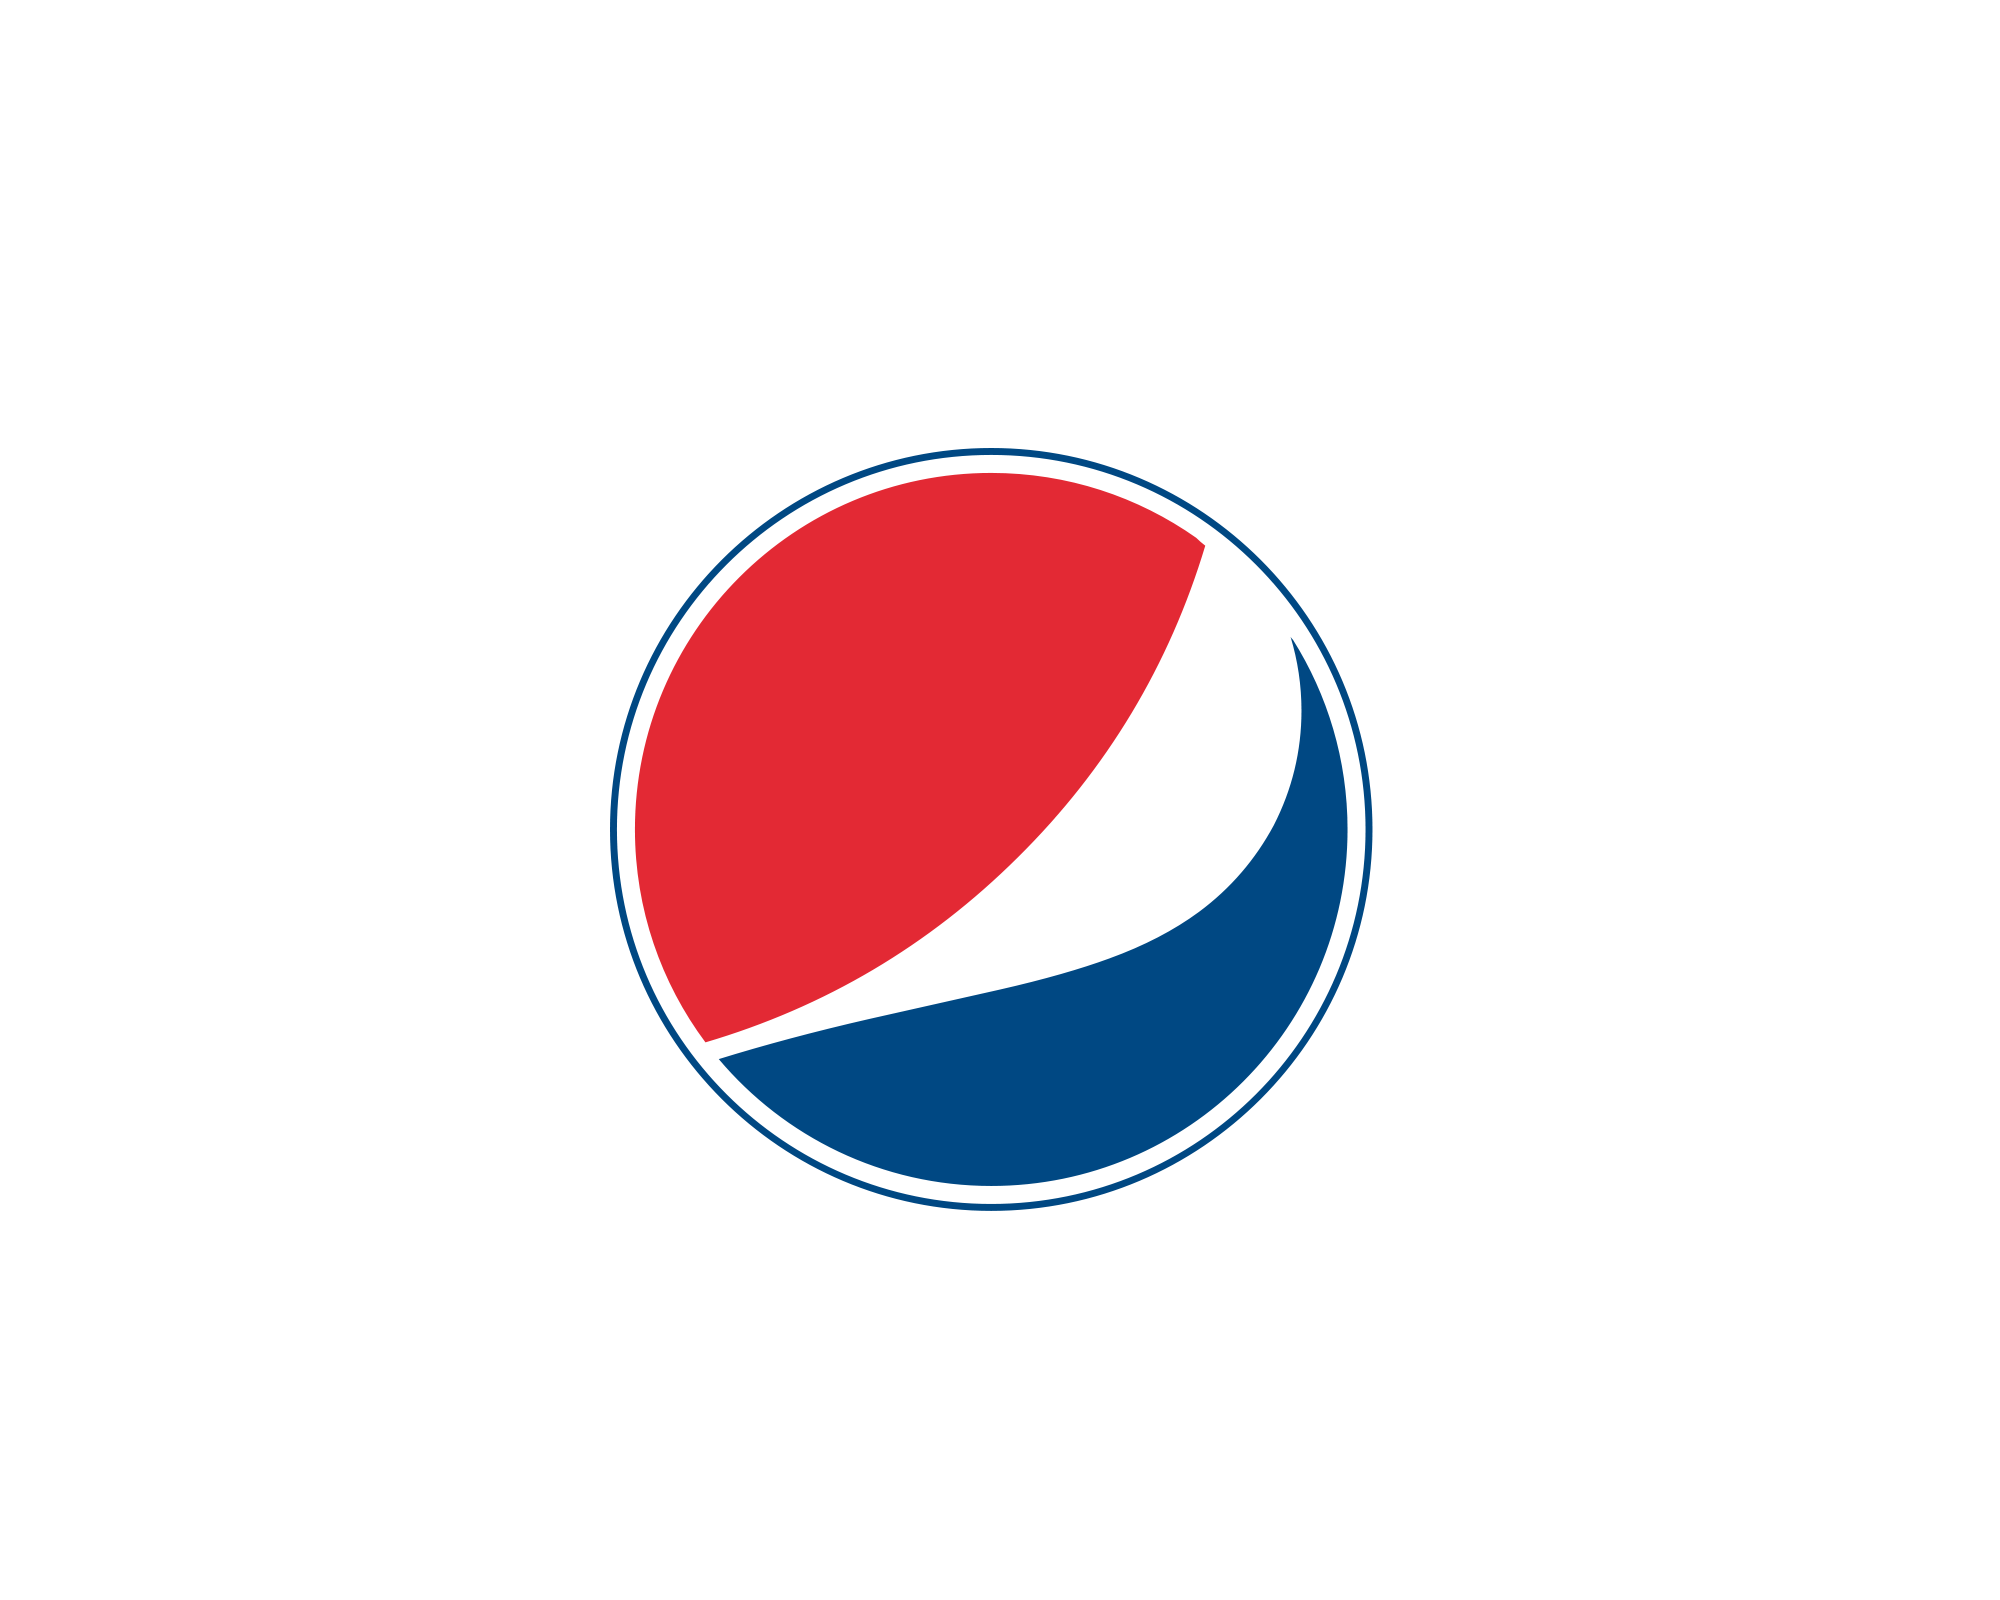 Pepsi Logo Wallpaper